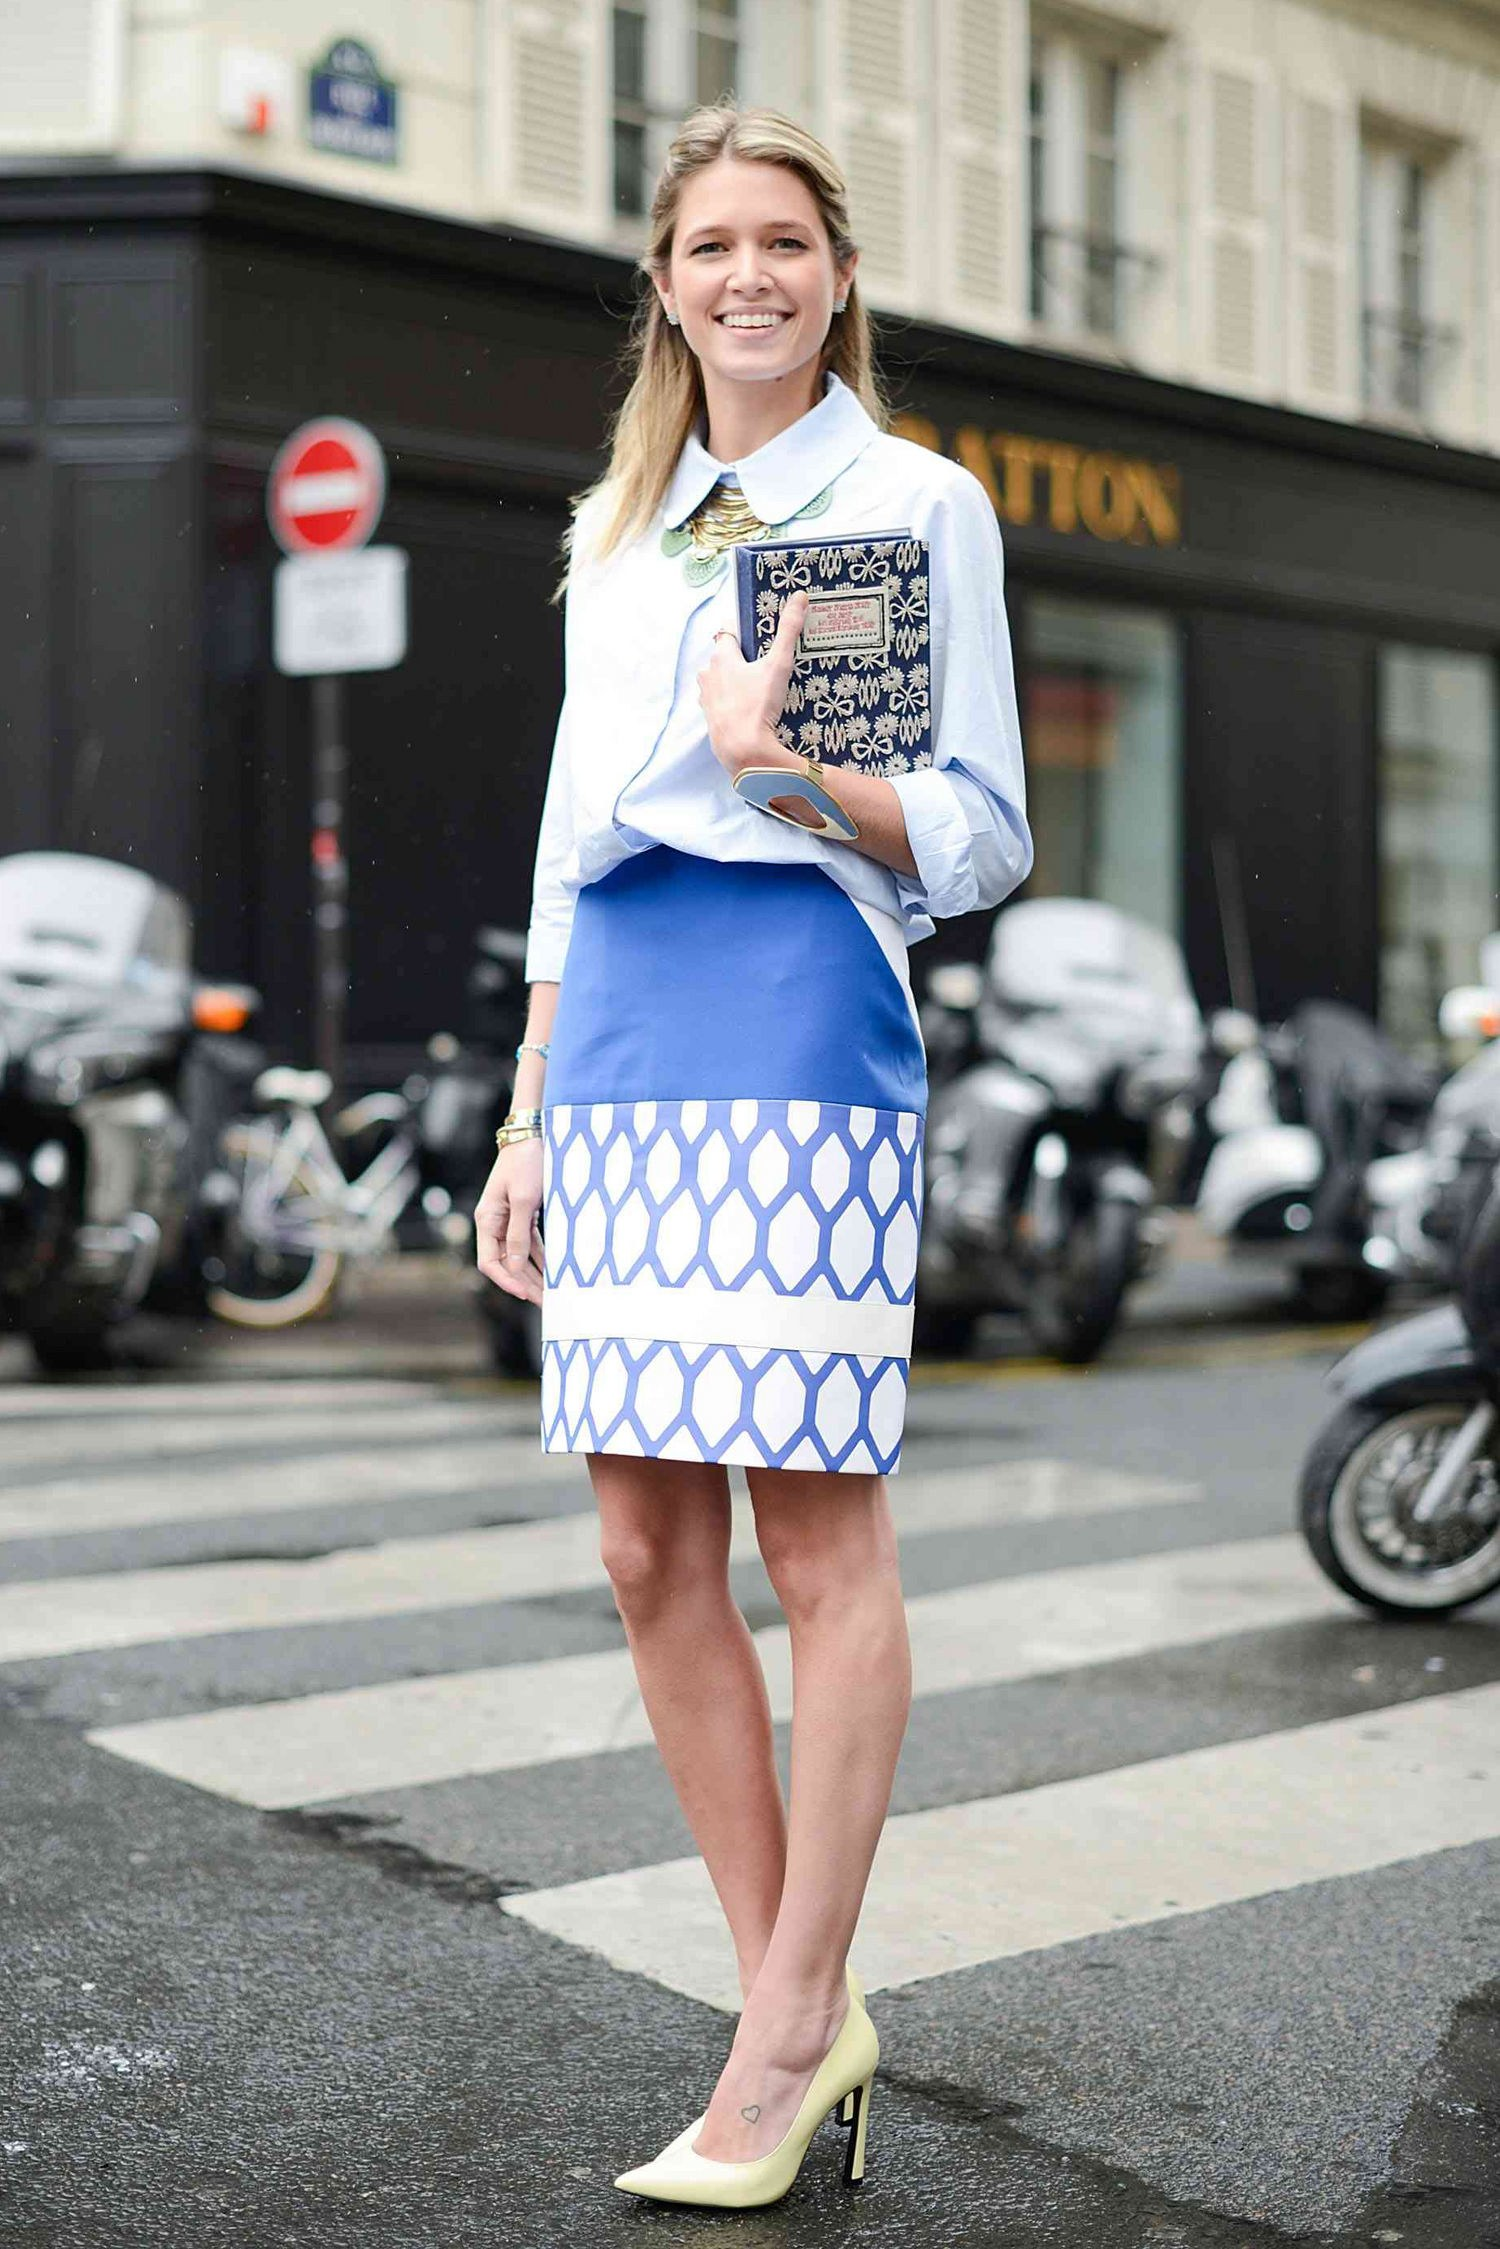 fashion-2015-09-work-office-outfit-pencil-skirt-GettyImages-451933042-main